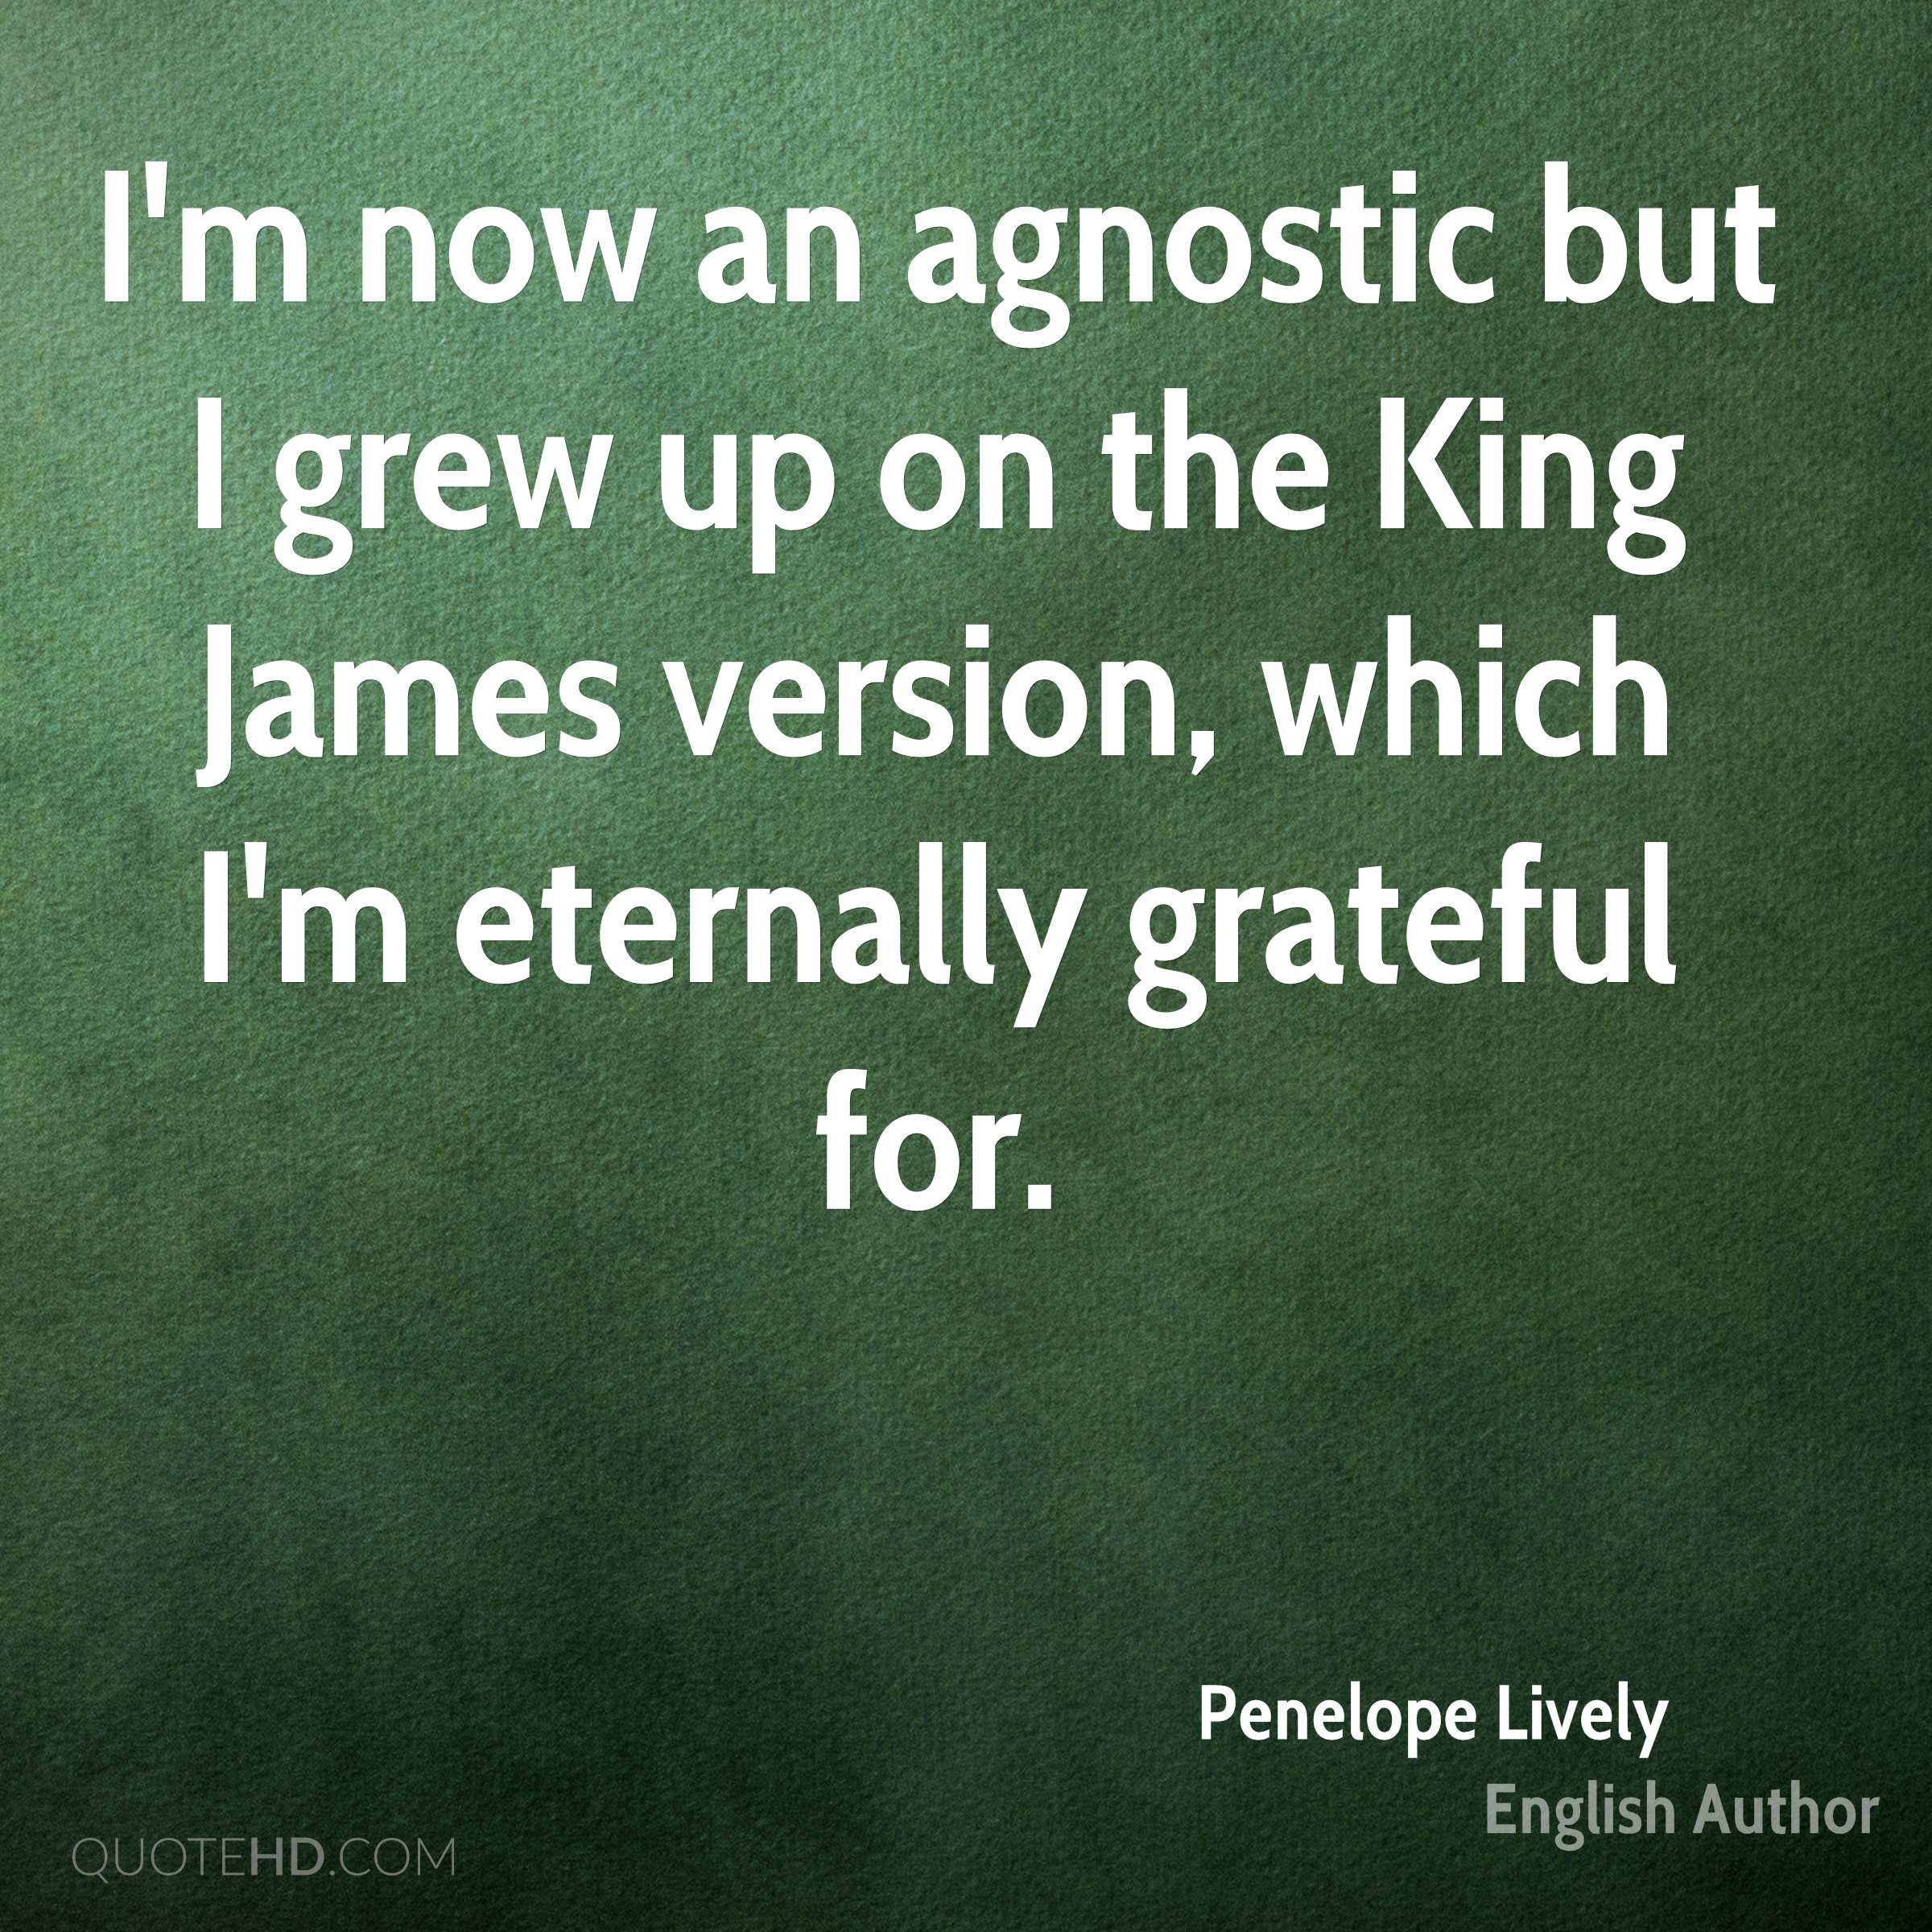 I'm now an agnostic but I grew up on the King James version, which I'm eternally grateful for.